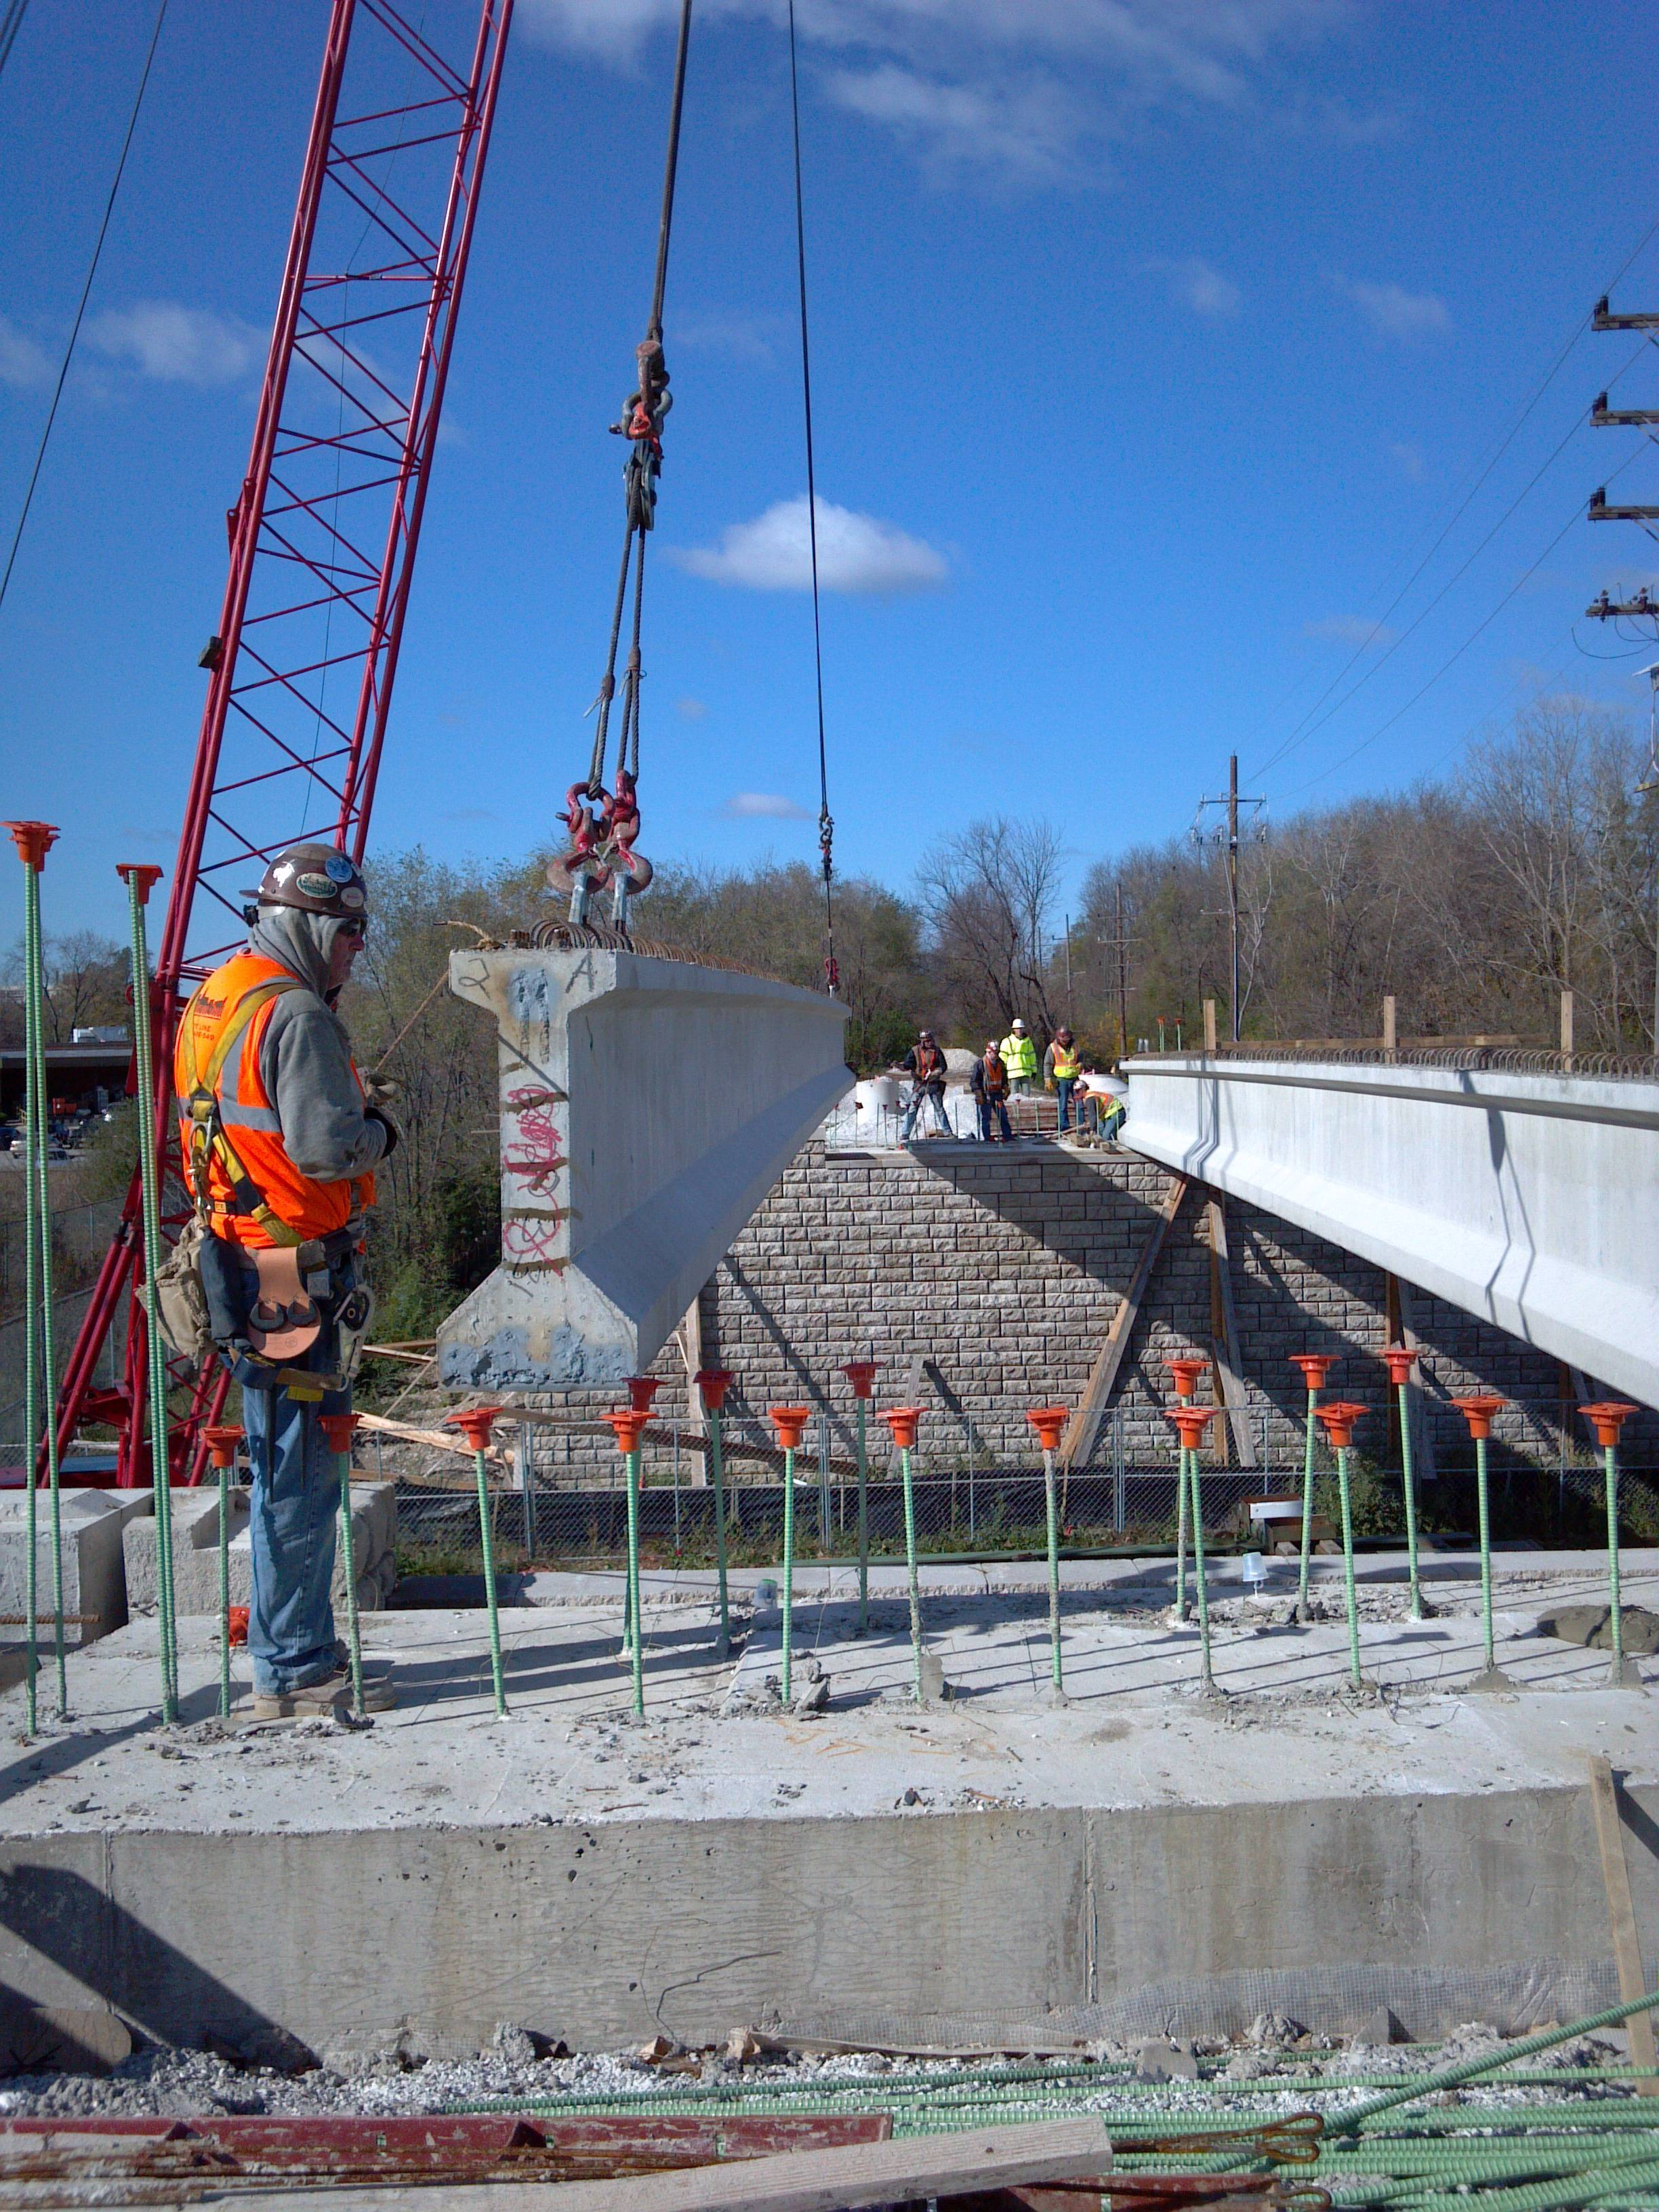 Beams were recently put in place as part of the Great Western Trail Bridge project.